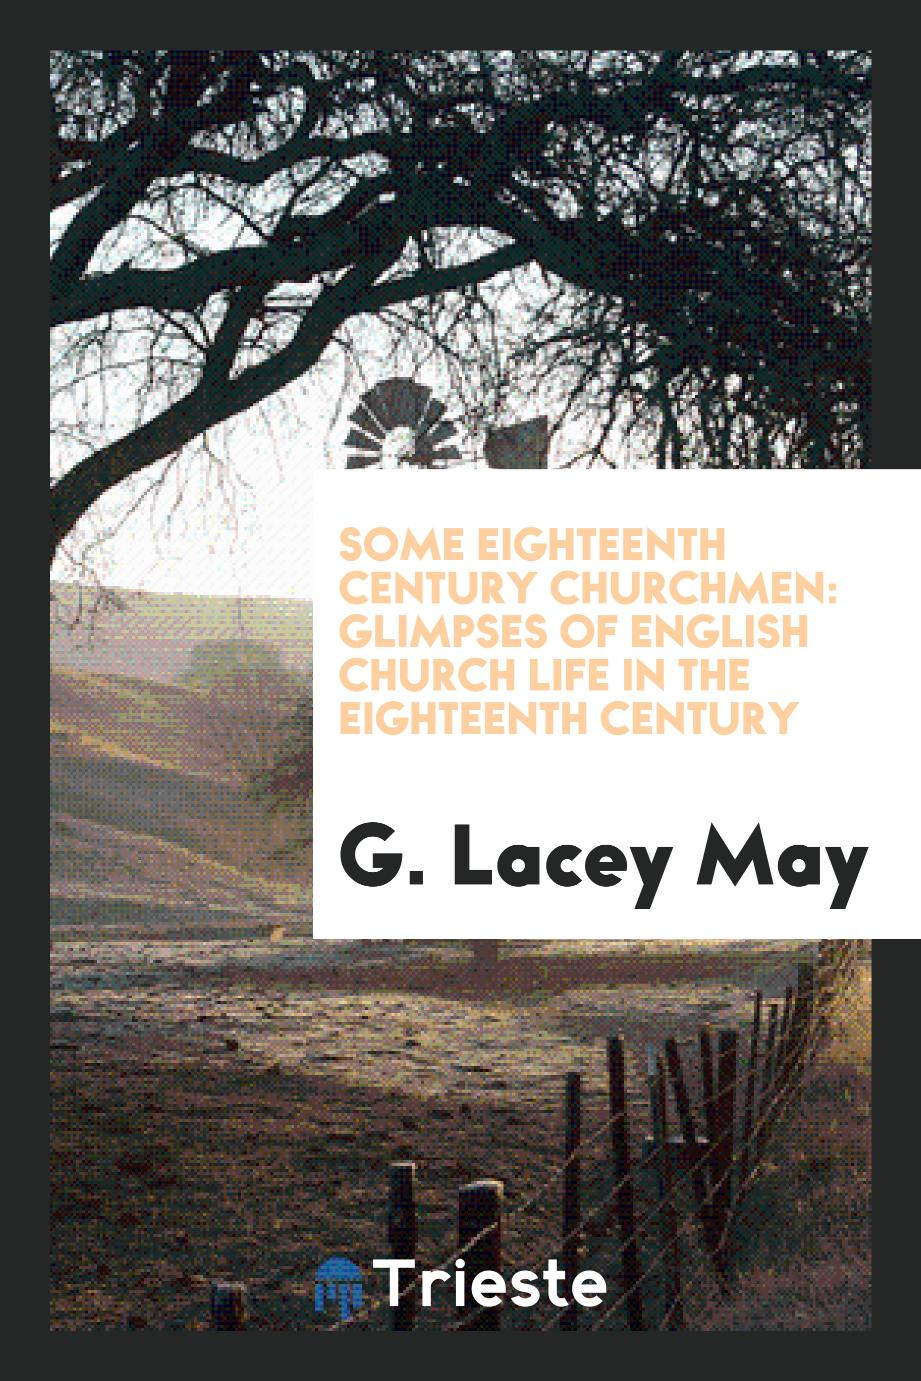 G. Lacey May - Some eighteenth century churchmen: glimpses of English church life in the eighteenth century